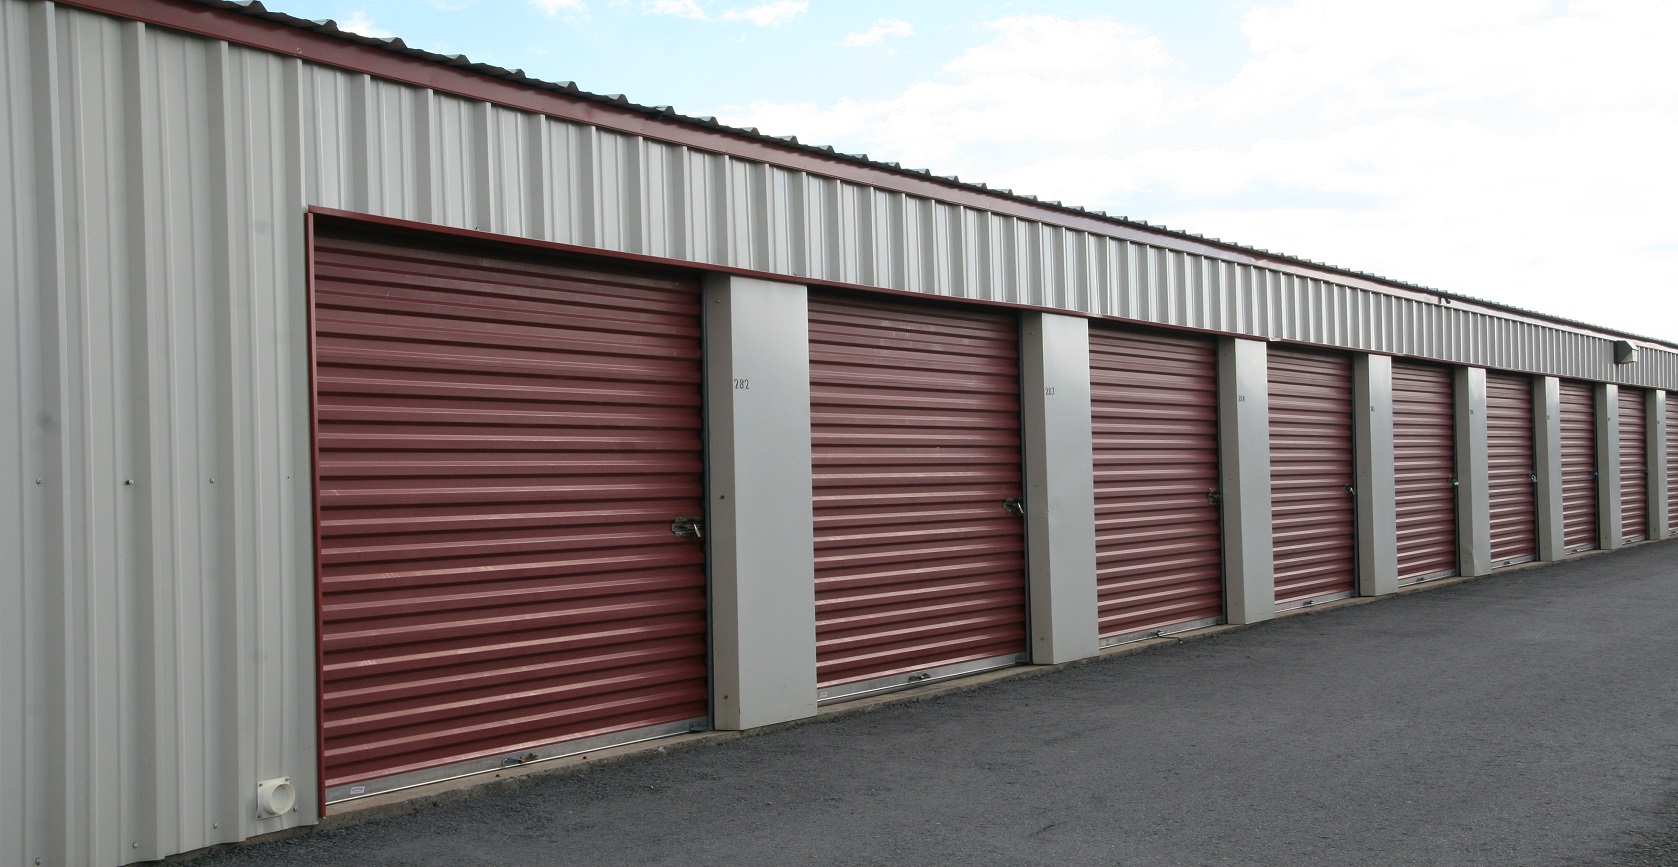 Storage facilities for sale best storage design 2017 for Outside storage units for sale